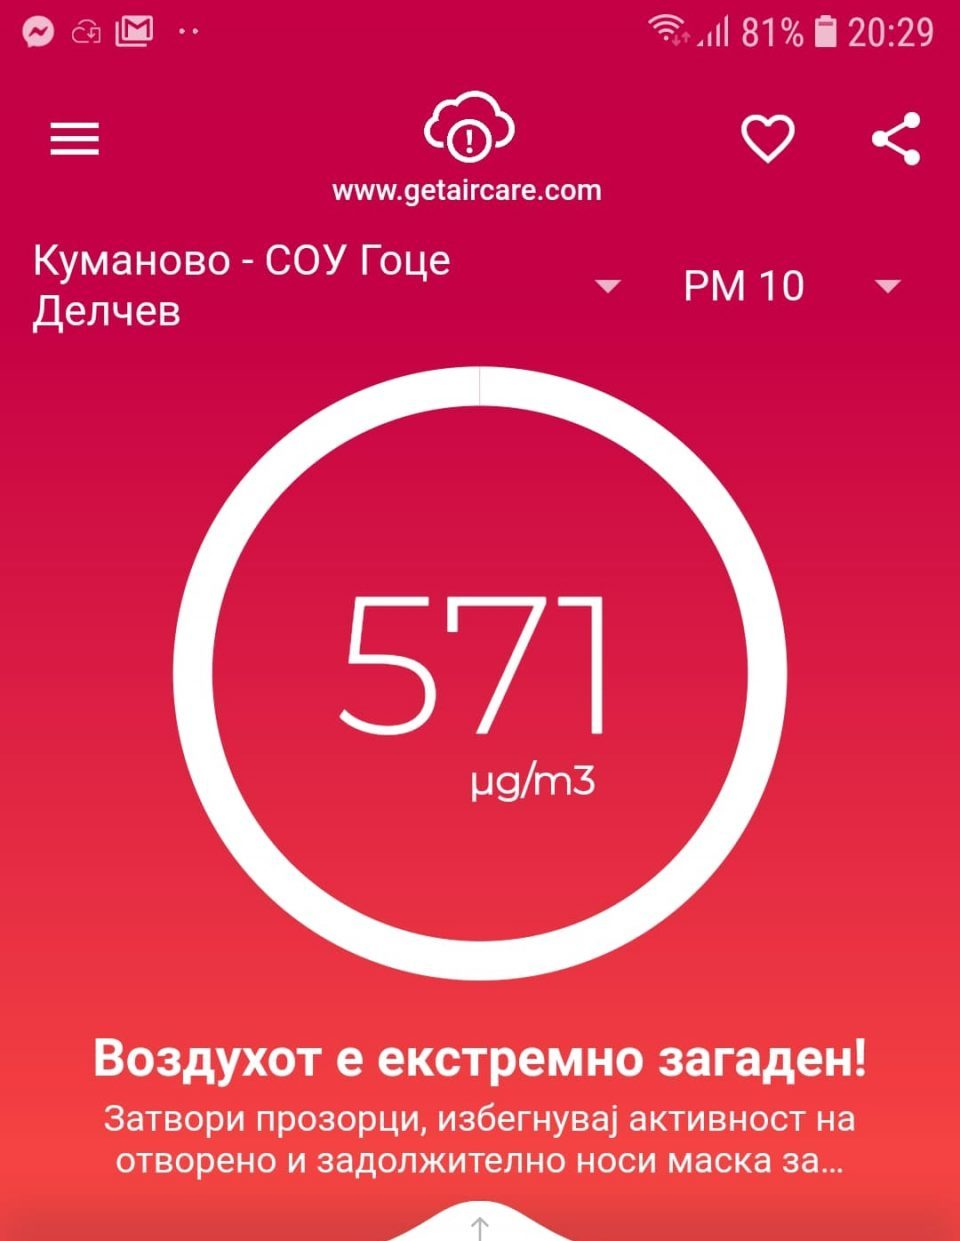 110 times higher concentration of PM 10 than allowed – Kumanovo tonight